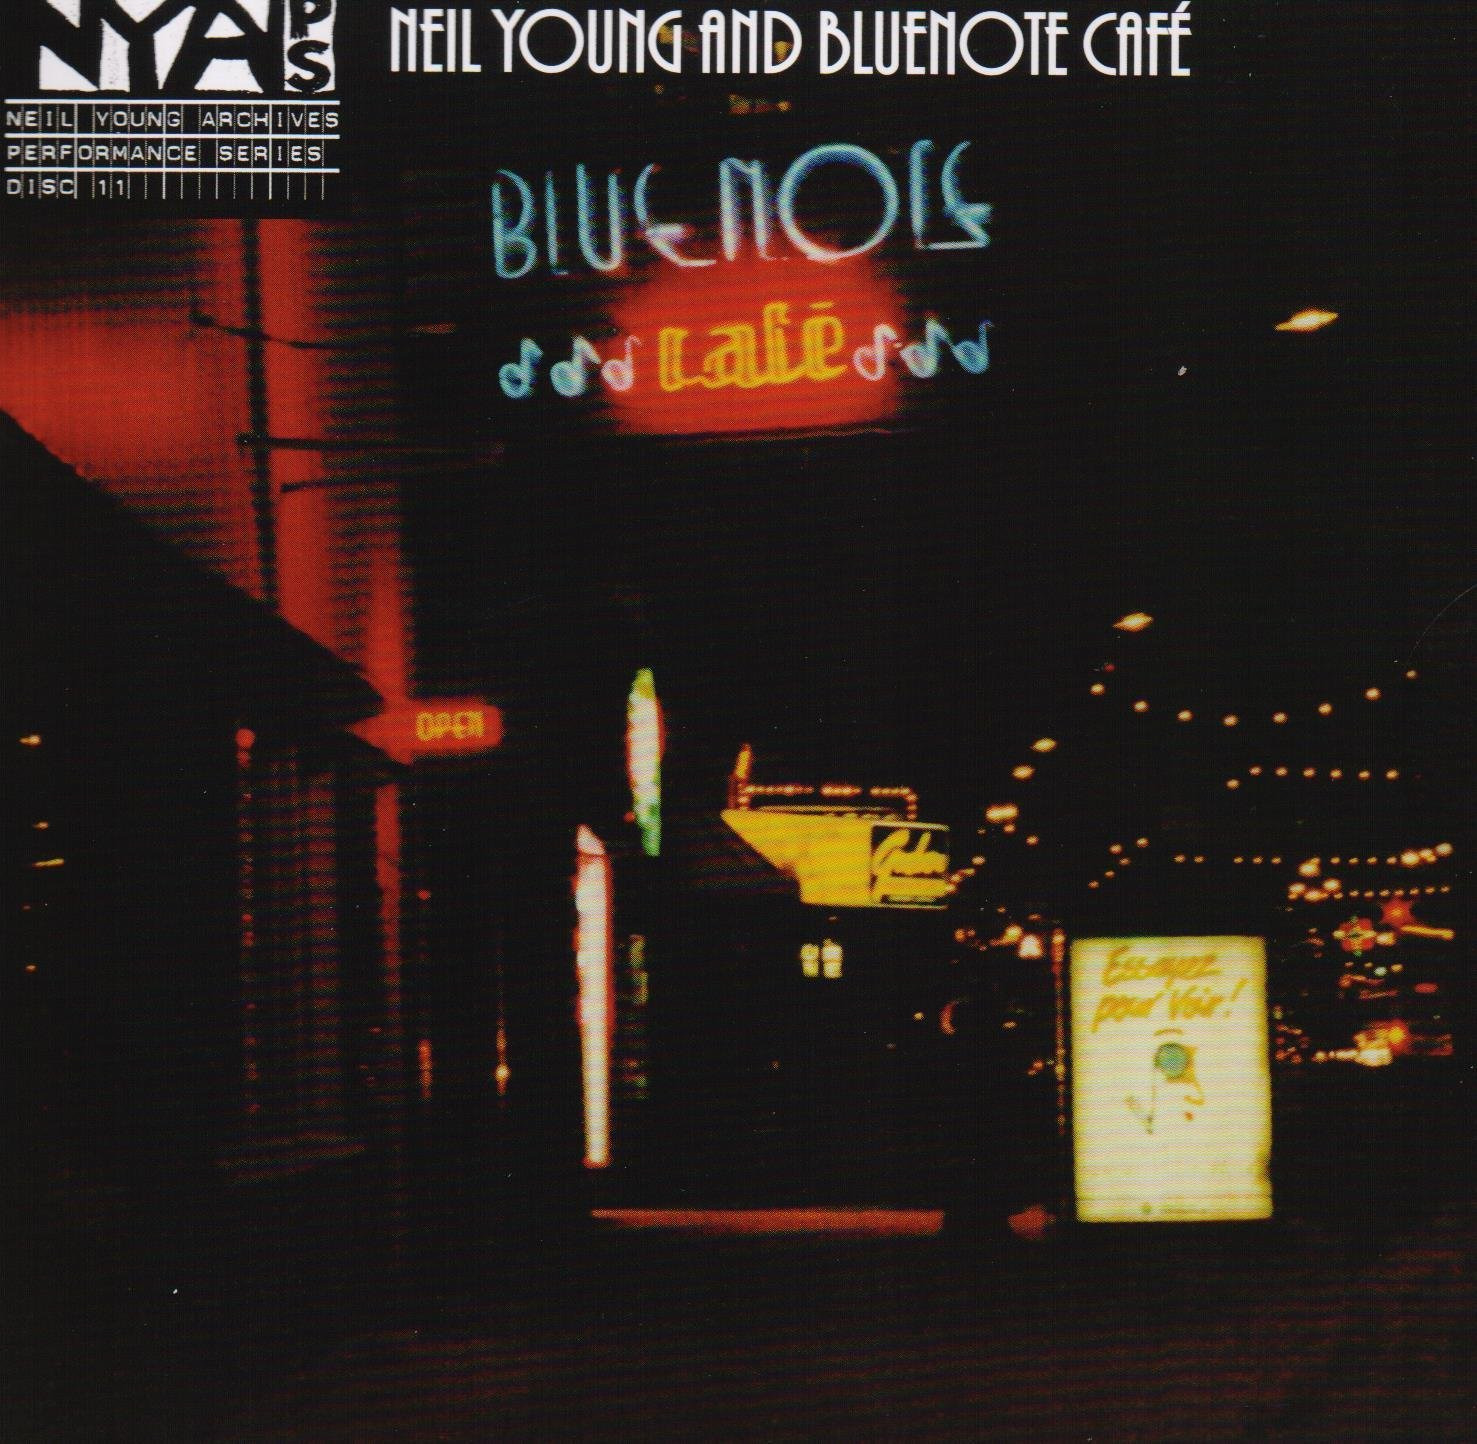 Neil Young Archives Performance Series Disc 11: Neil Young and Bluenote Café [2 CDs]